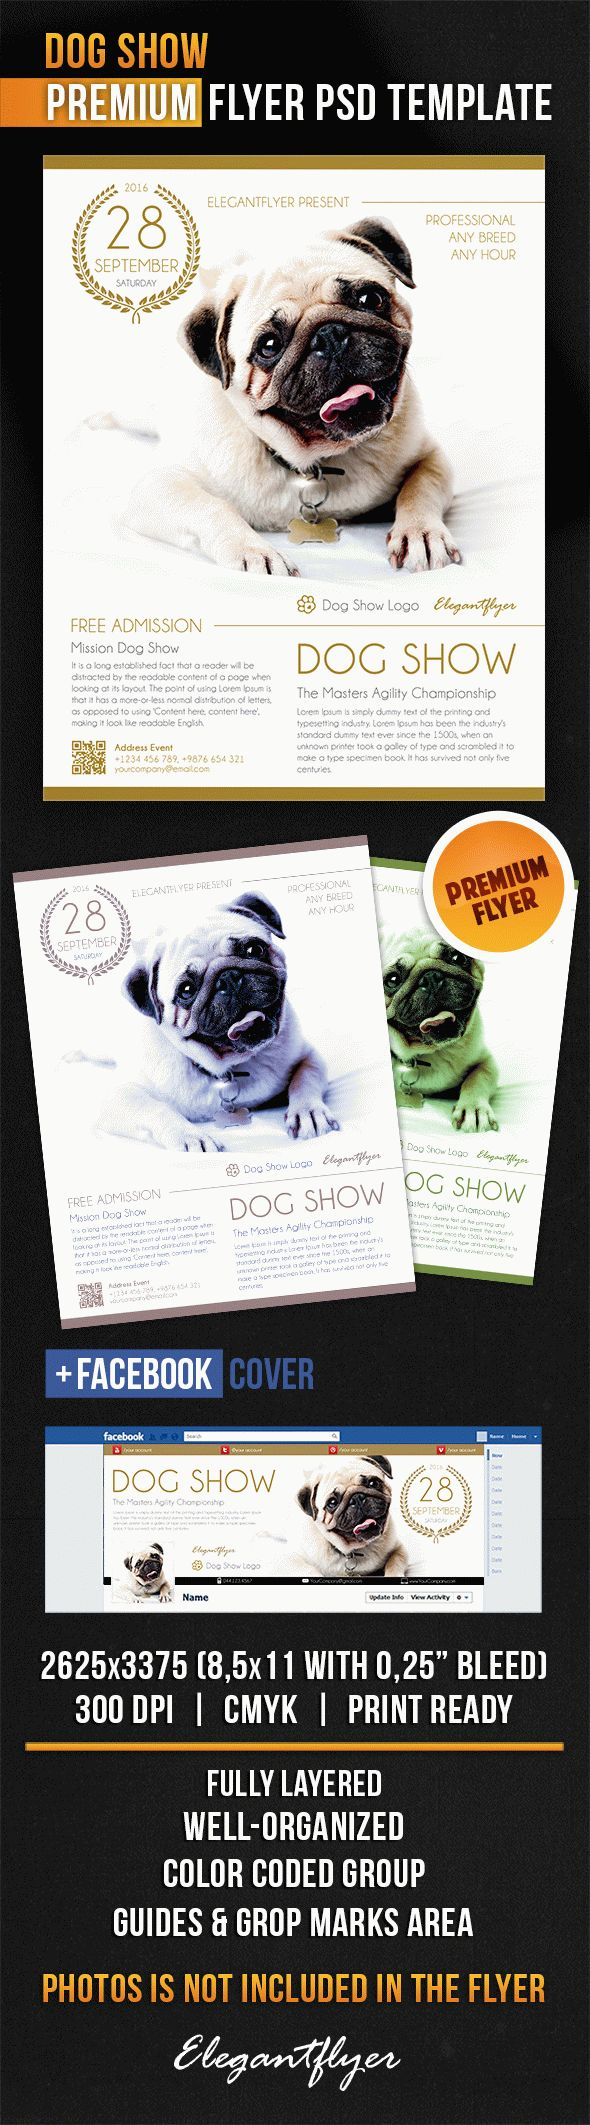 Dog show flyer psd template by elegantflyer for Dog show certificate template